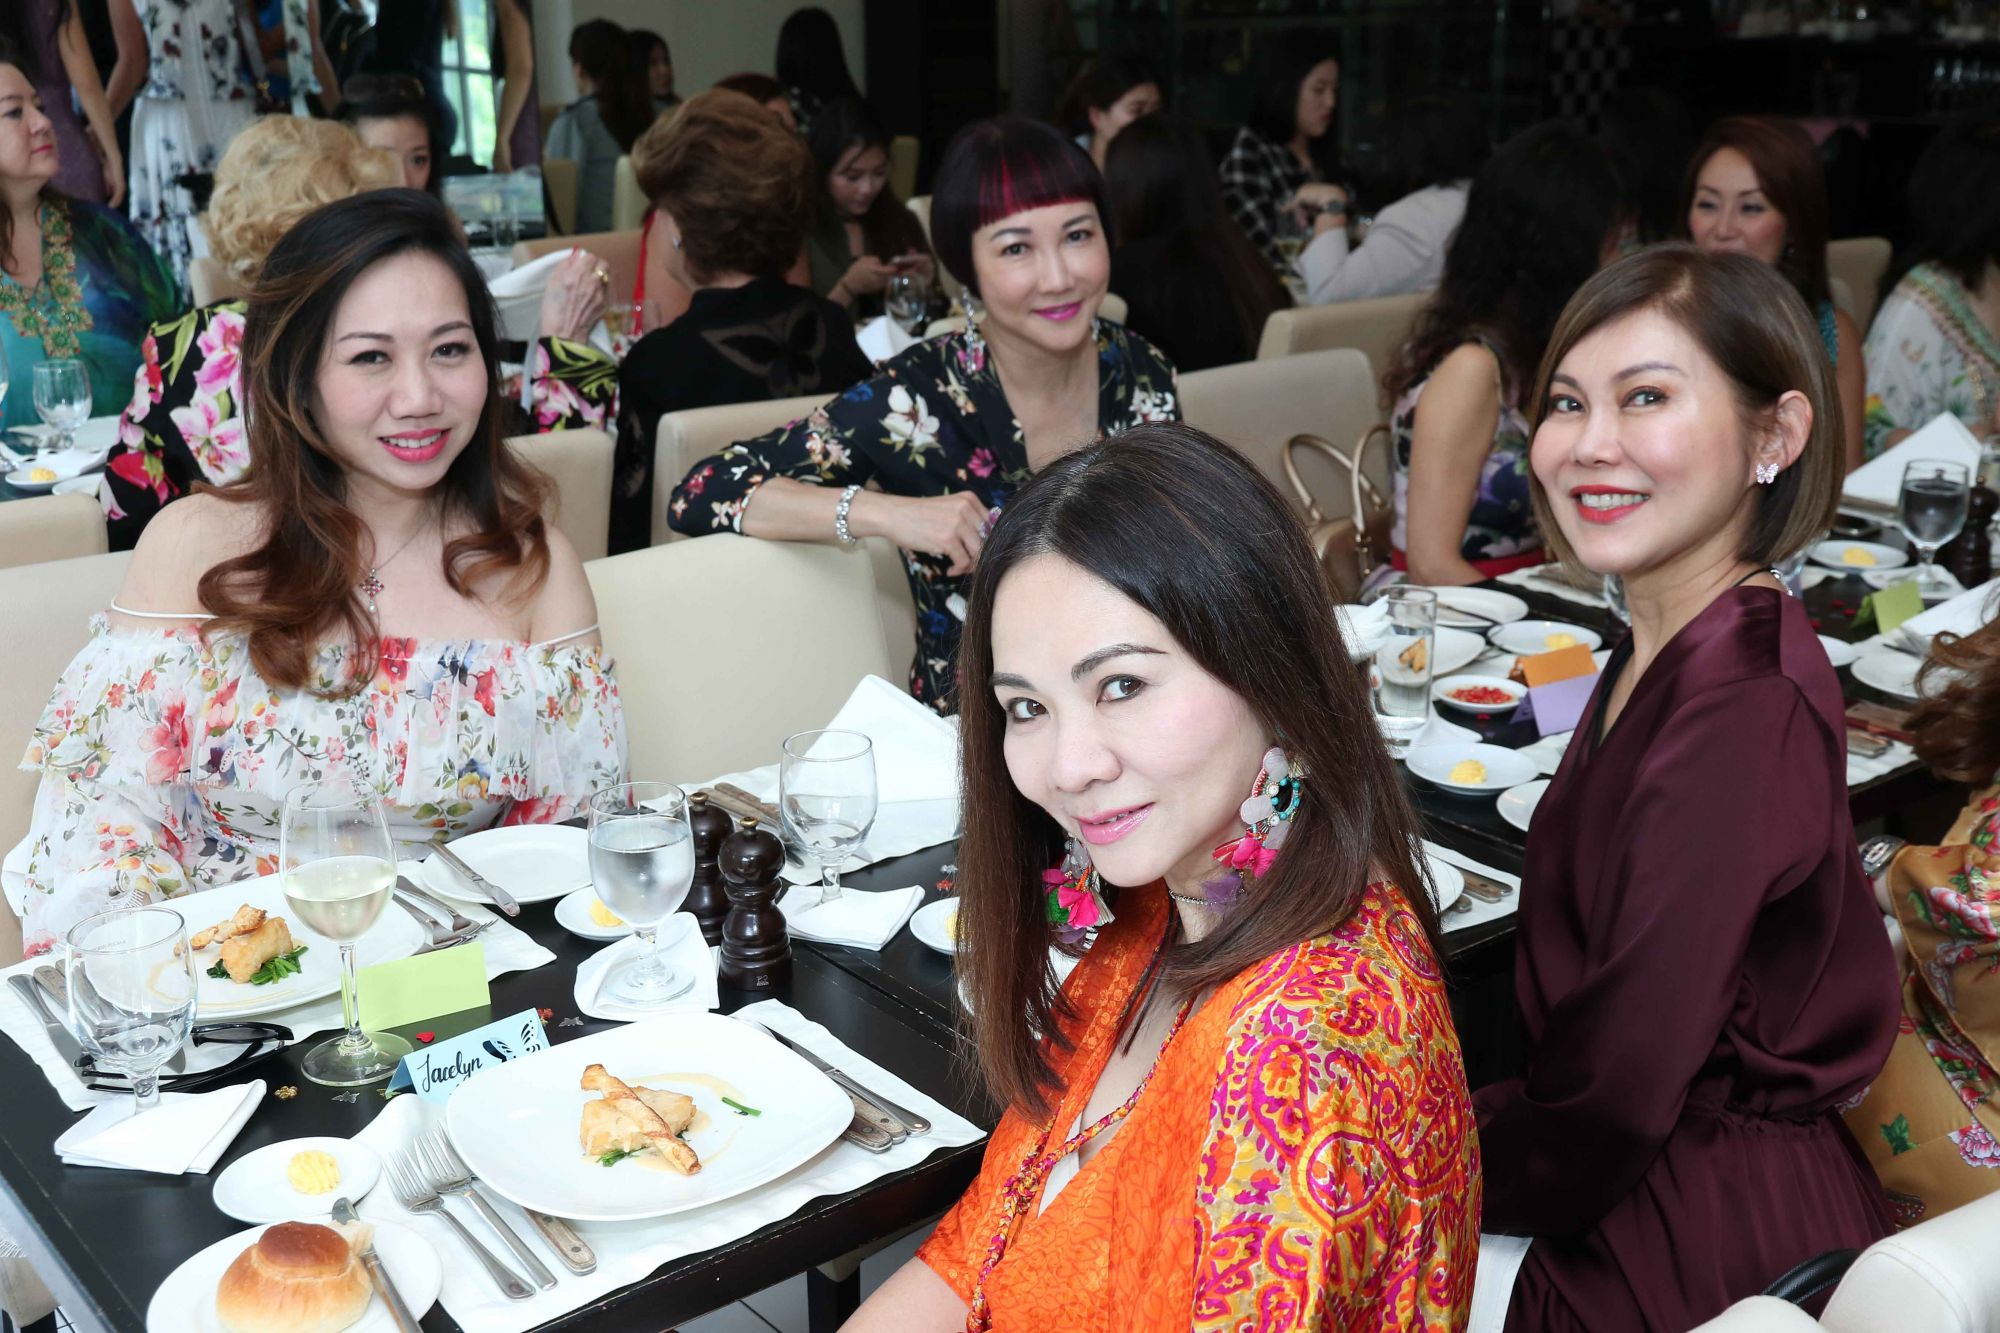 Adeline Quek, Frances Low, Jacelyn Lai, Sharon Lim